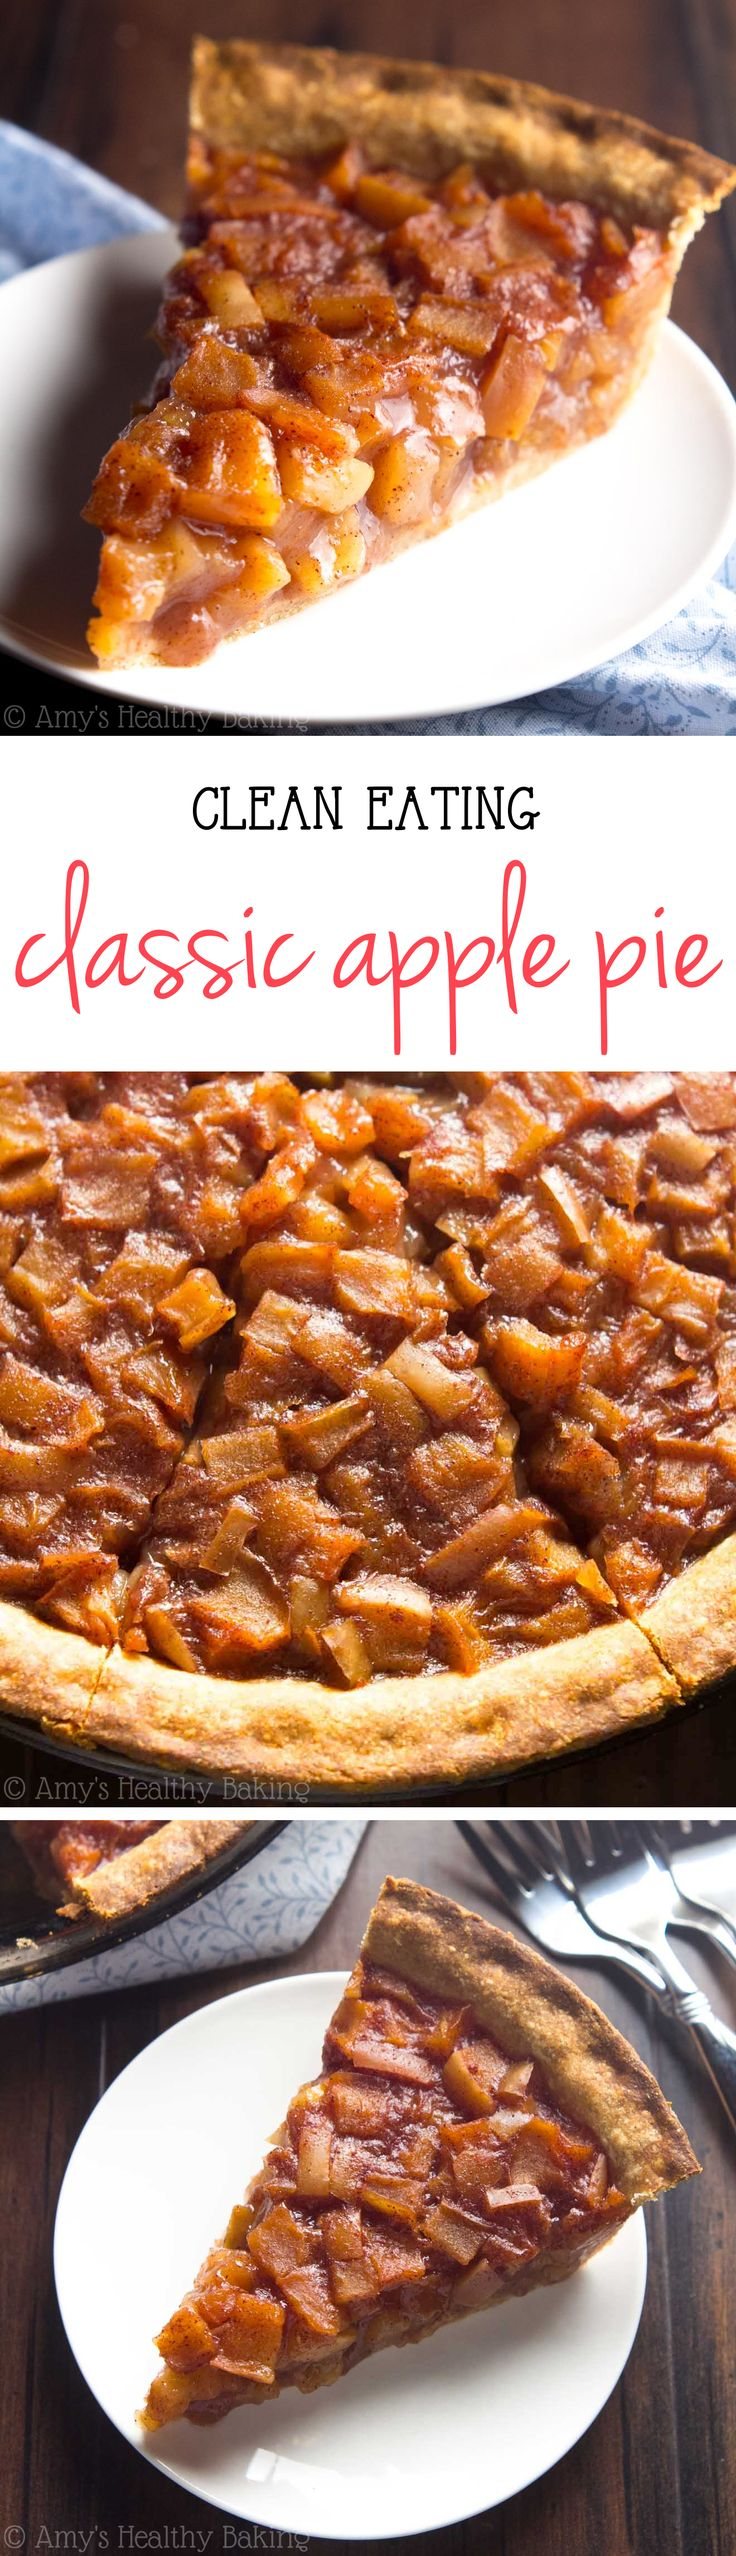 Clean-Eating Classic Apple Pie -- only 140 calories & complete with a flaky, buttery crust! This skinny pie doesn't taste healthy at all! You'll never need another apple pie recipe again!